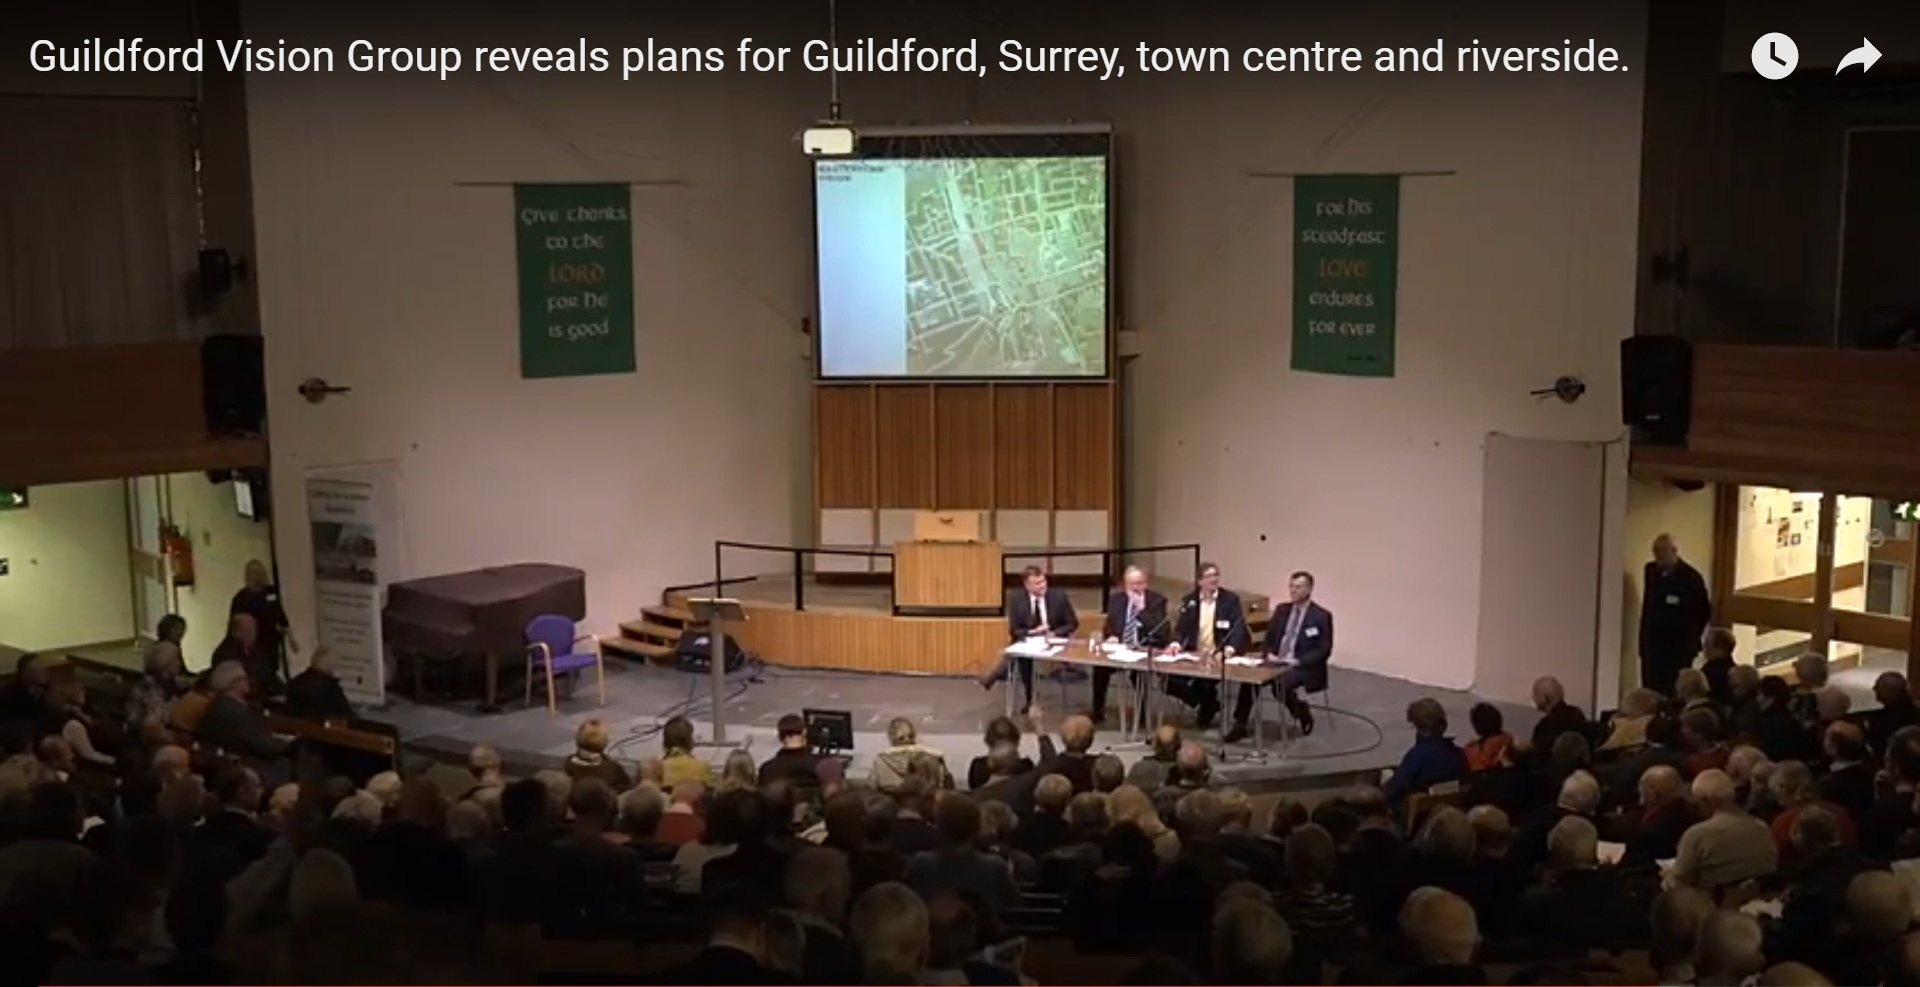 Launch of Guildford Vision Group's Revitalising Town Centre Plan